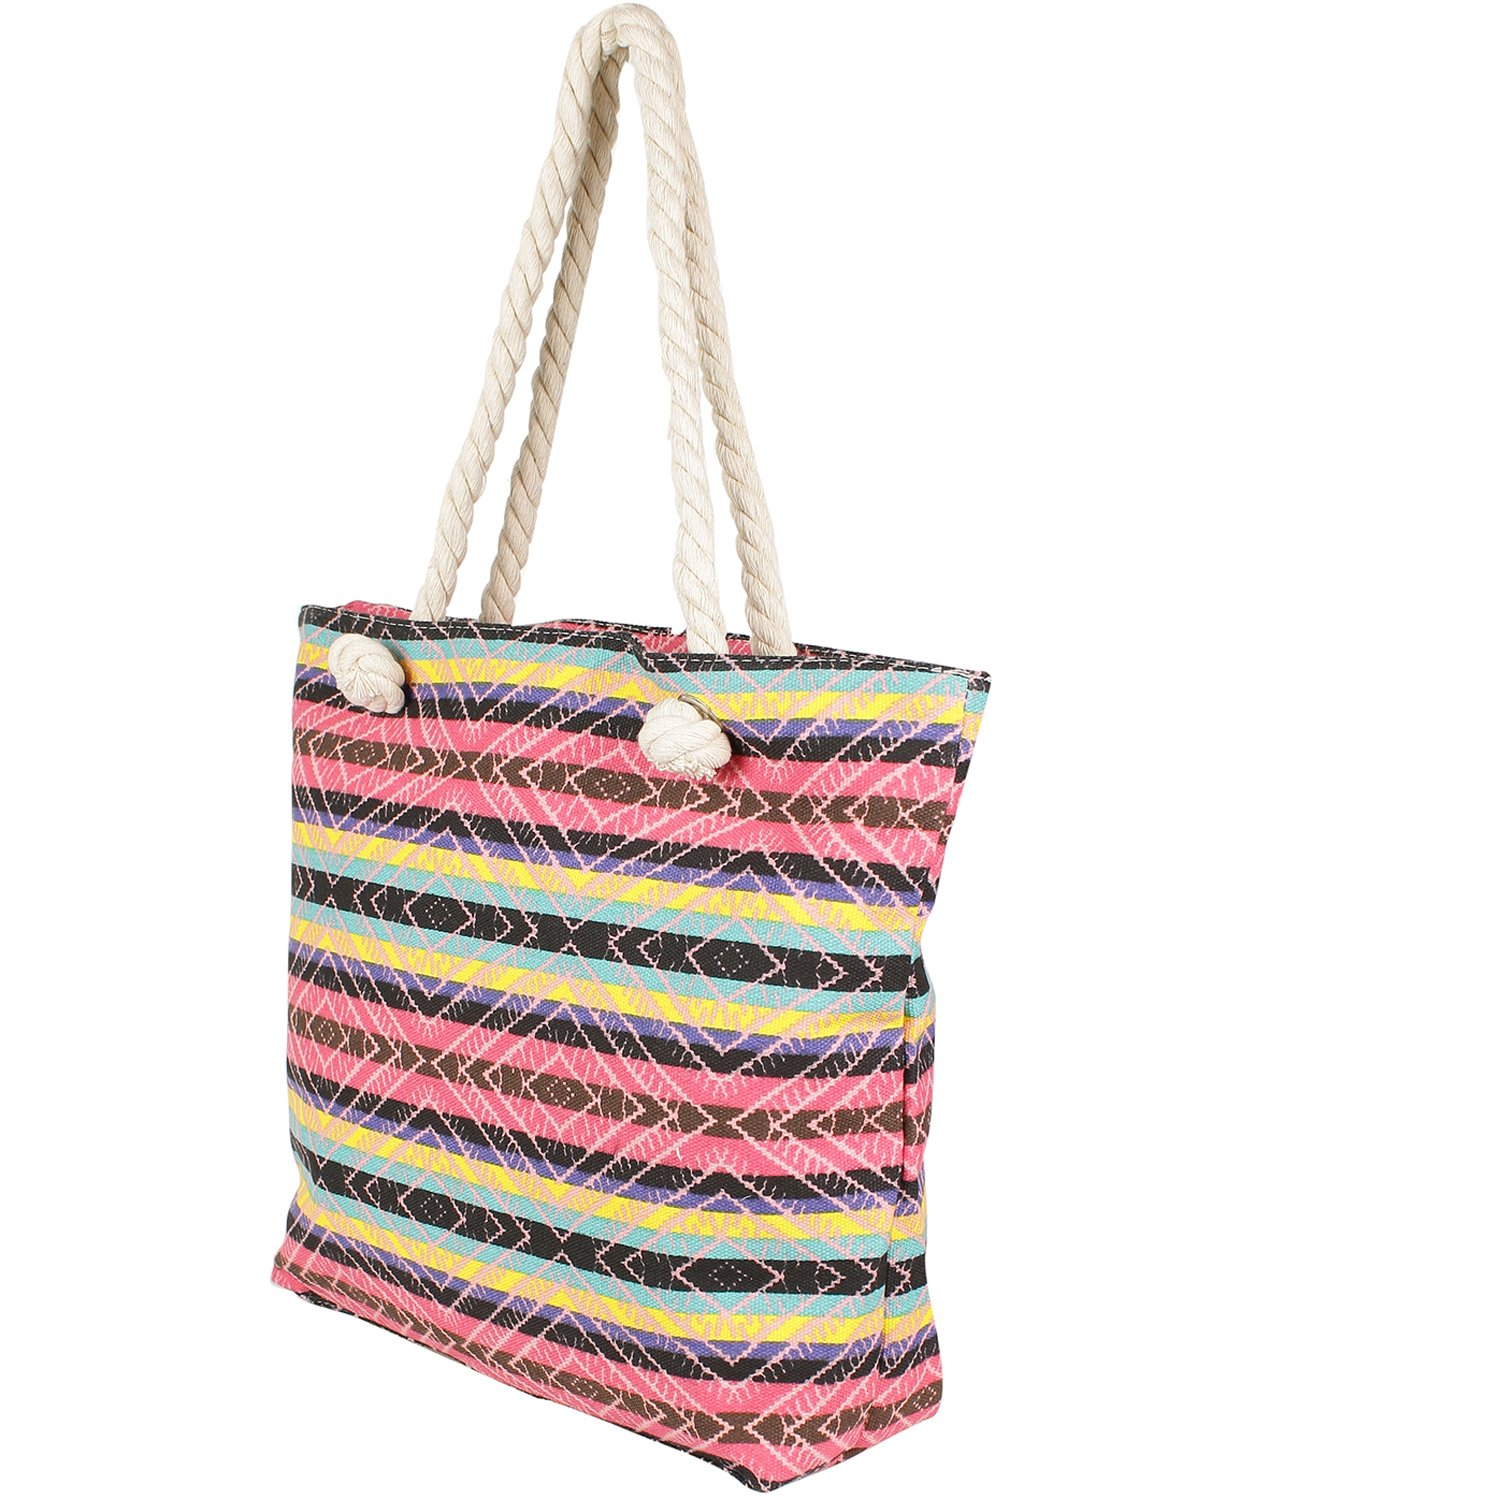 Stripes Patterned Multicolor Hand Bag for Mother s Day  Amazon.in  Shoes    Handbags ad2f8ad253b14